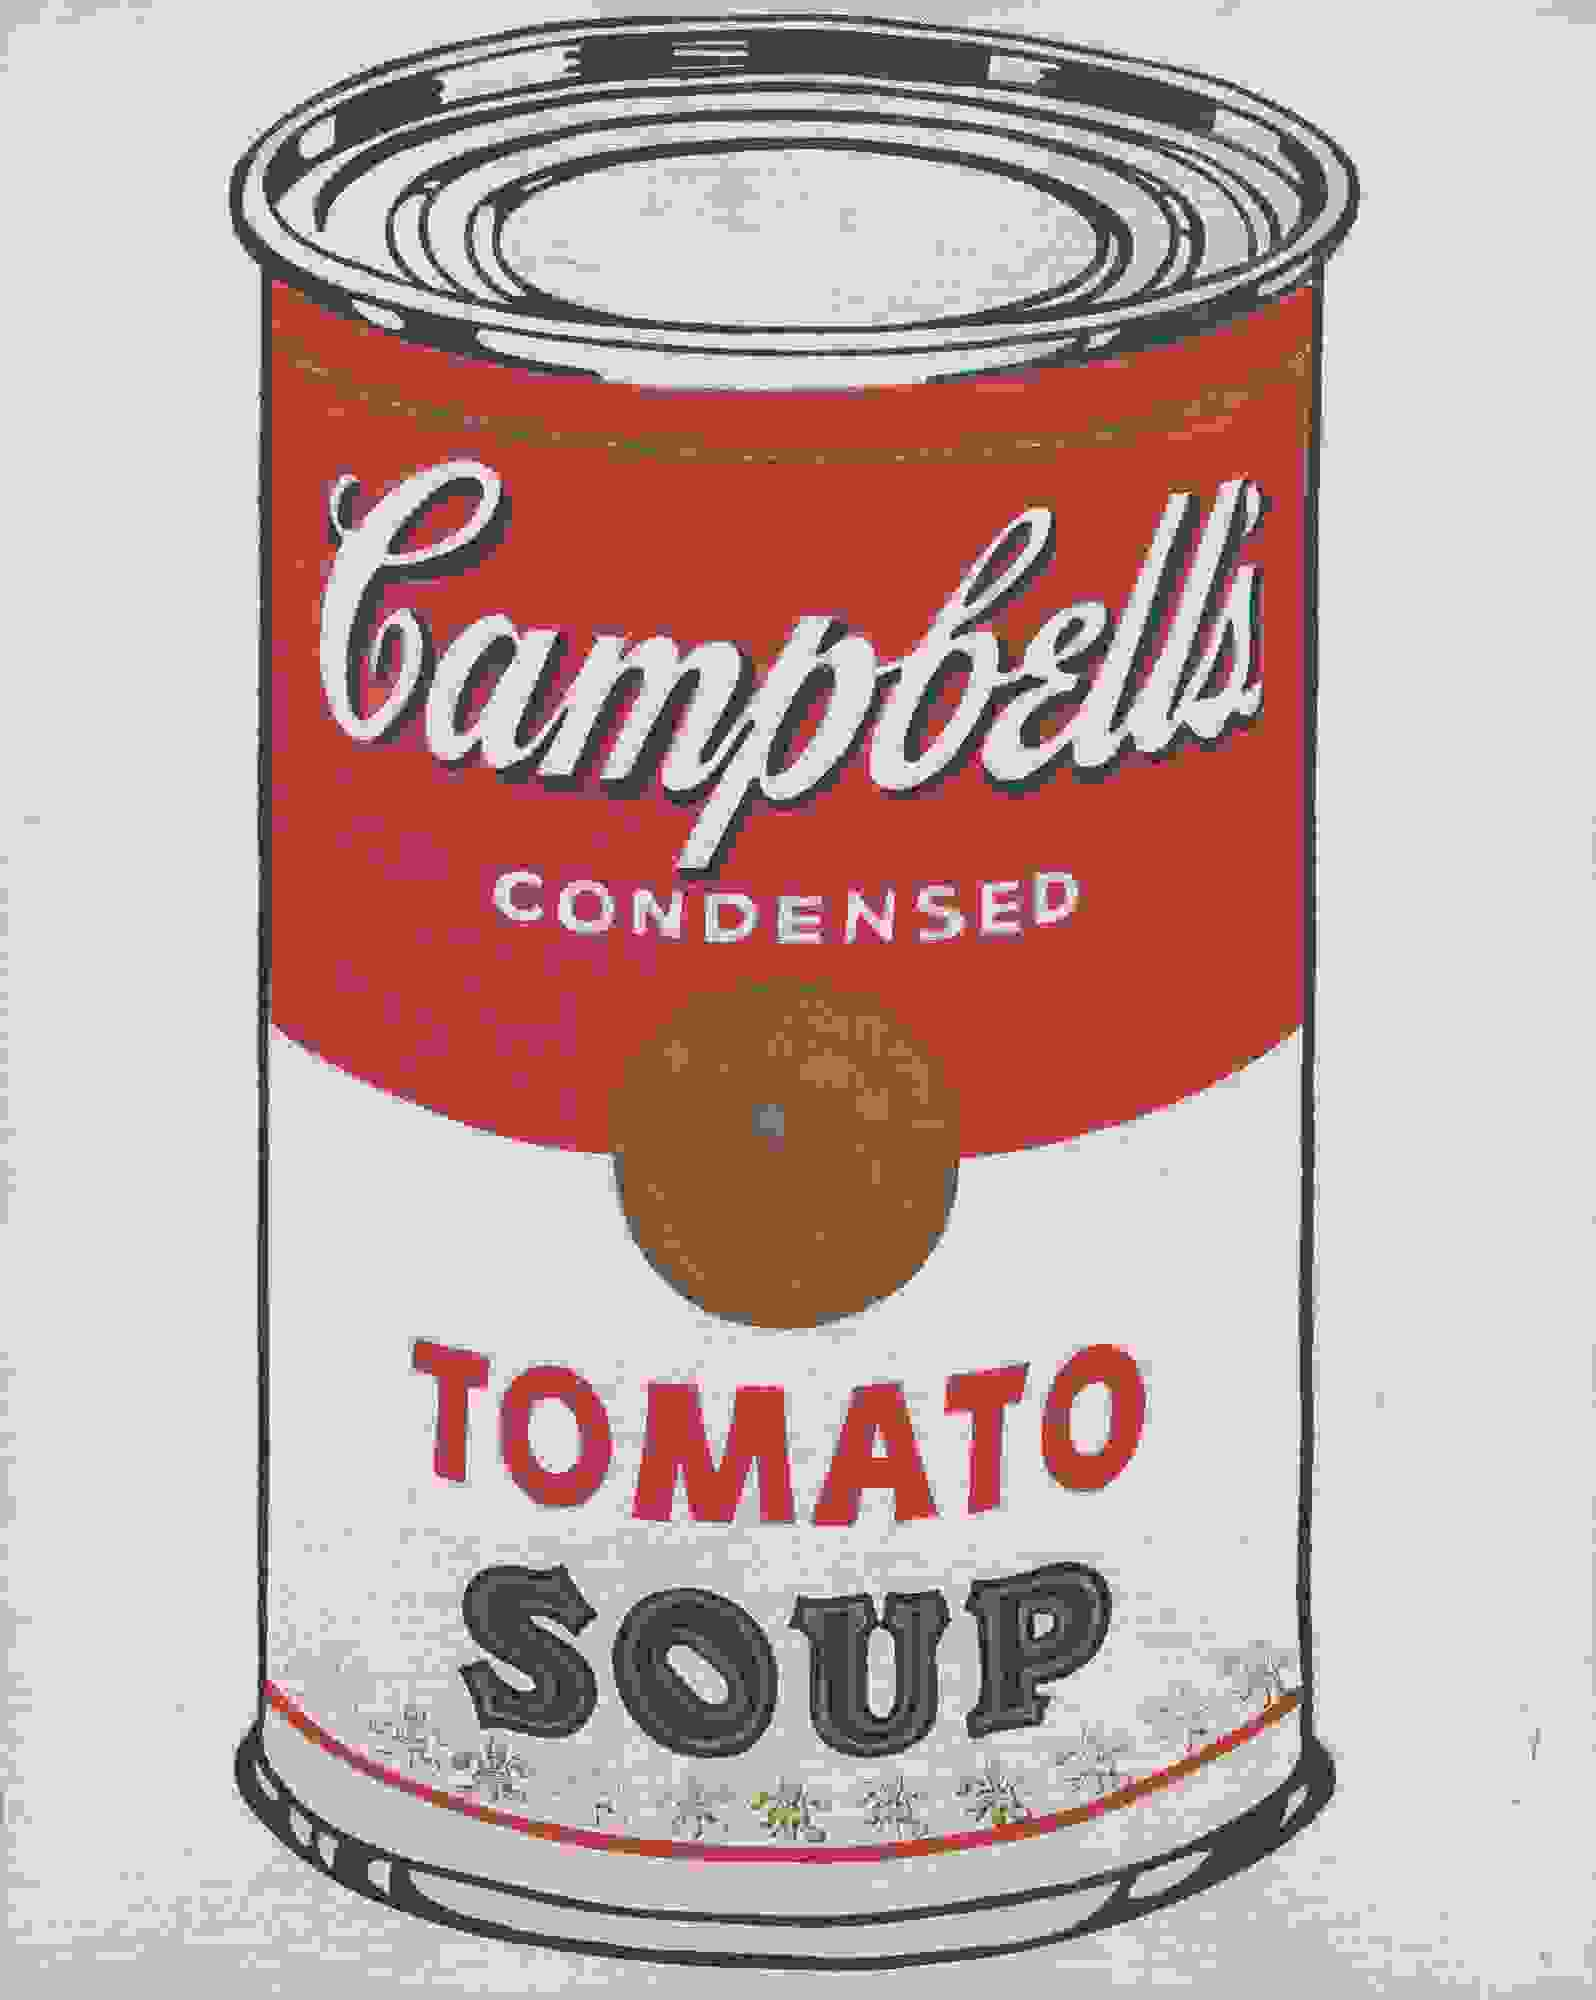 Warhol's Campbell's soup can | Source: moma.org